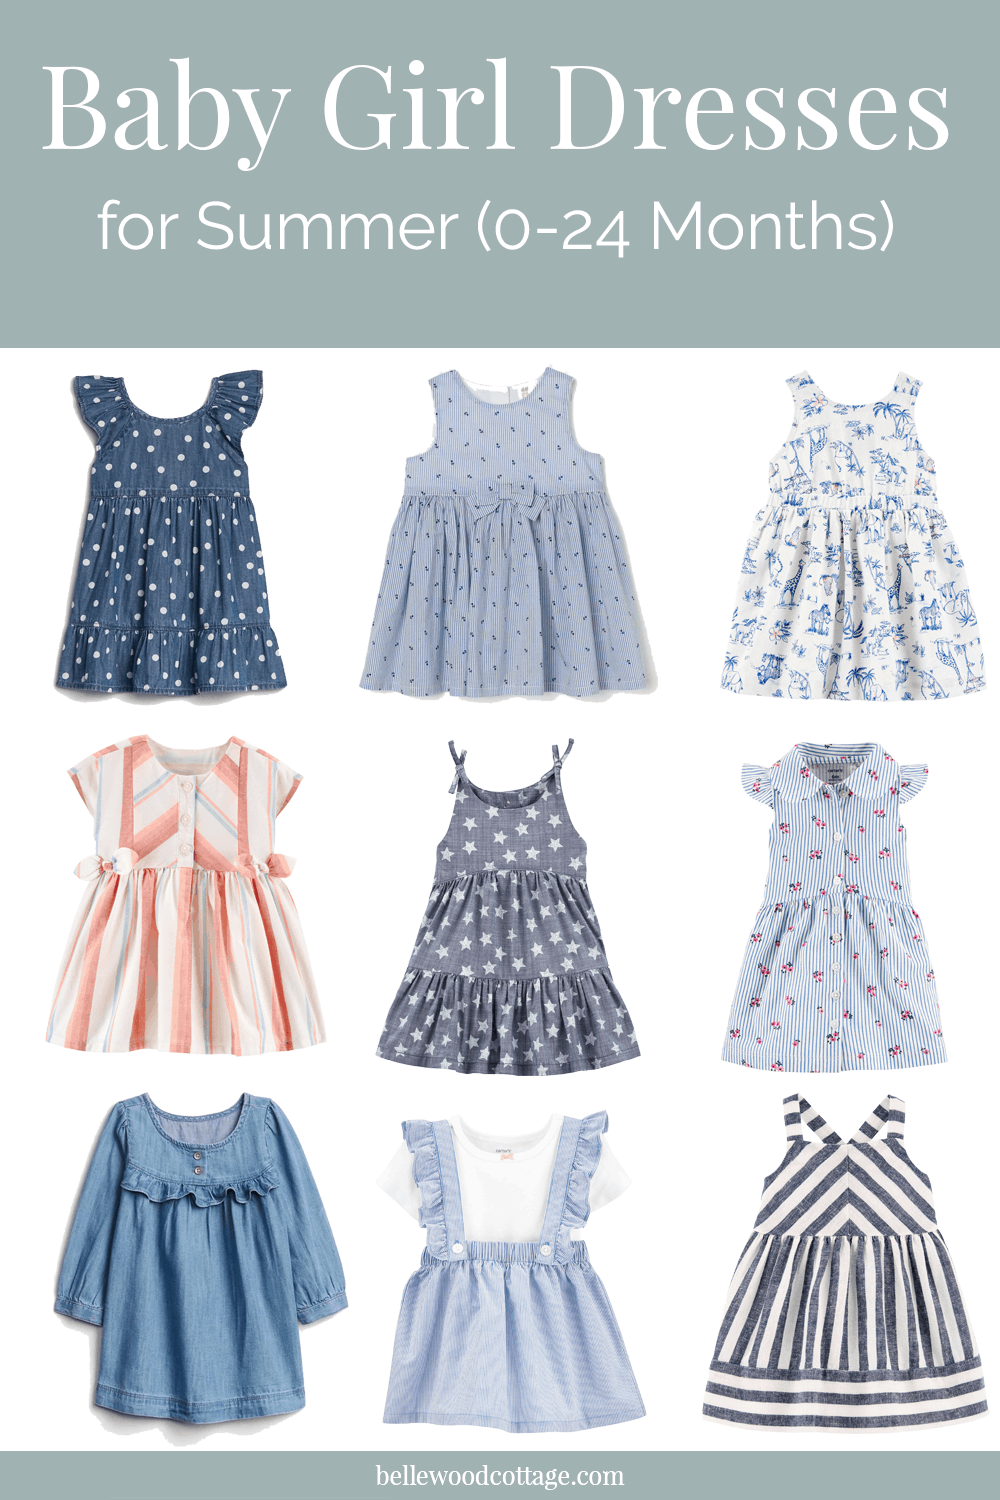 A collage of mainly blue summer dresses for baby girls.